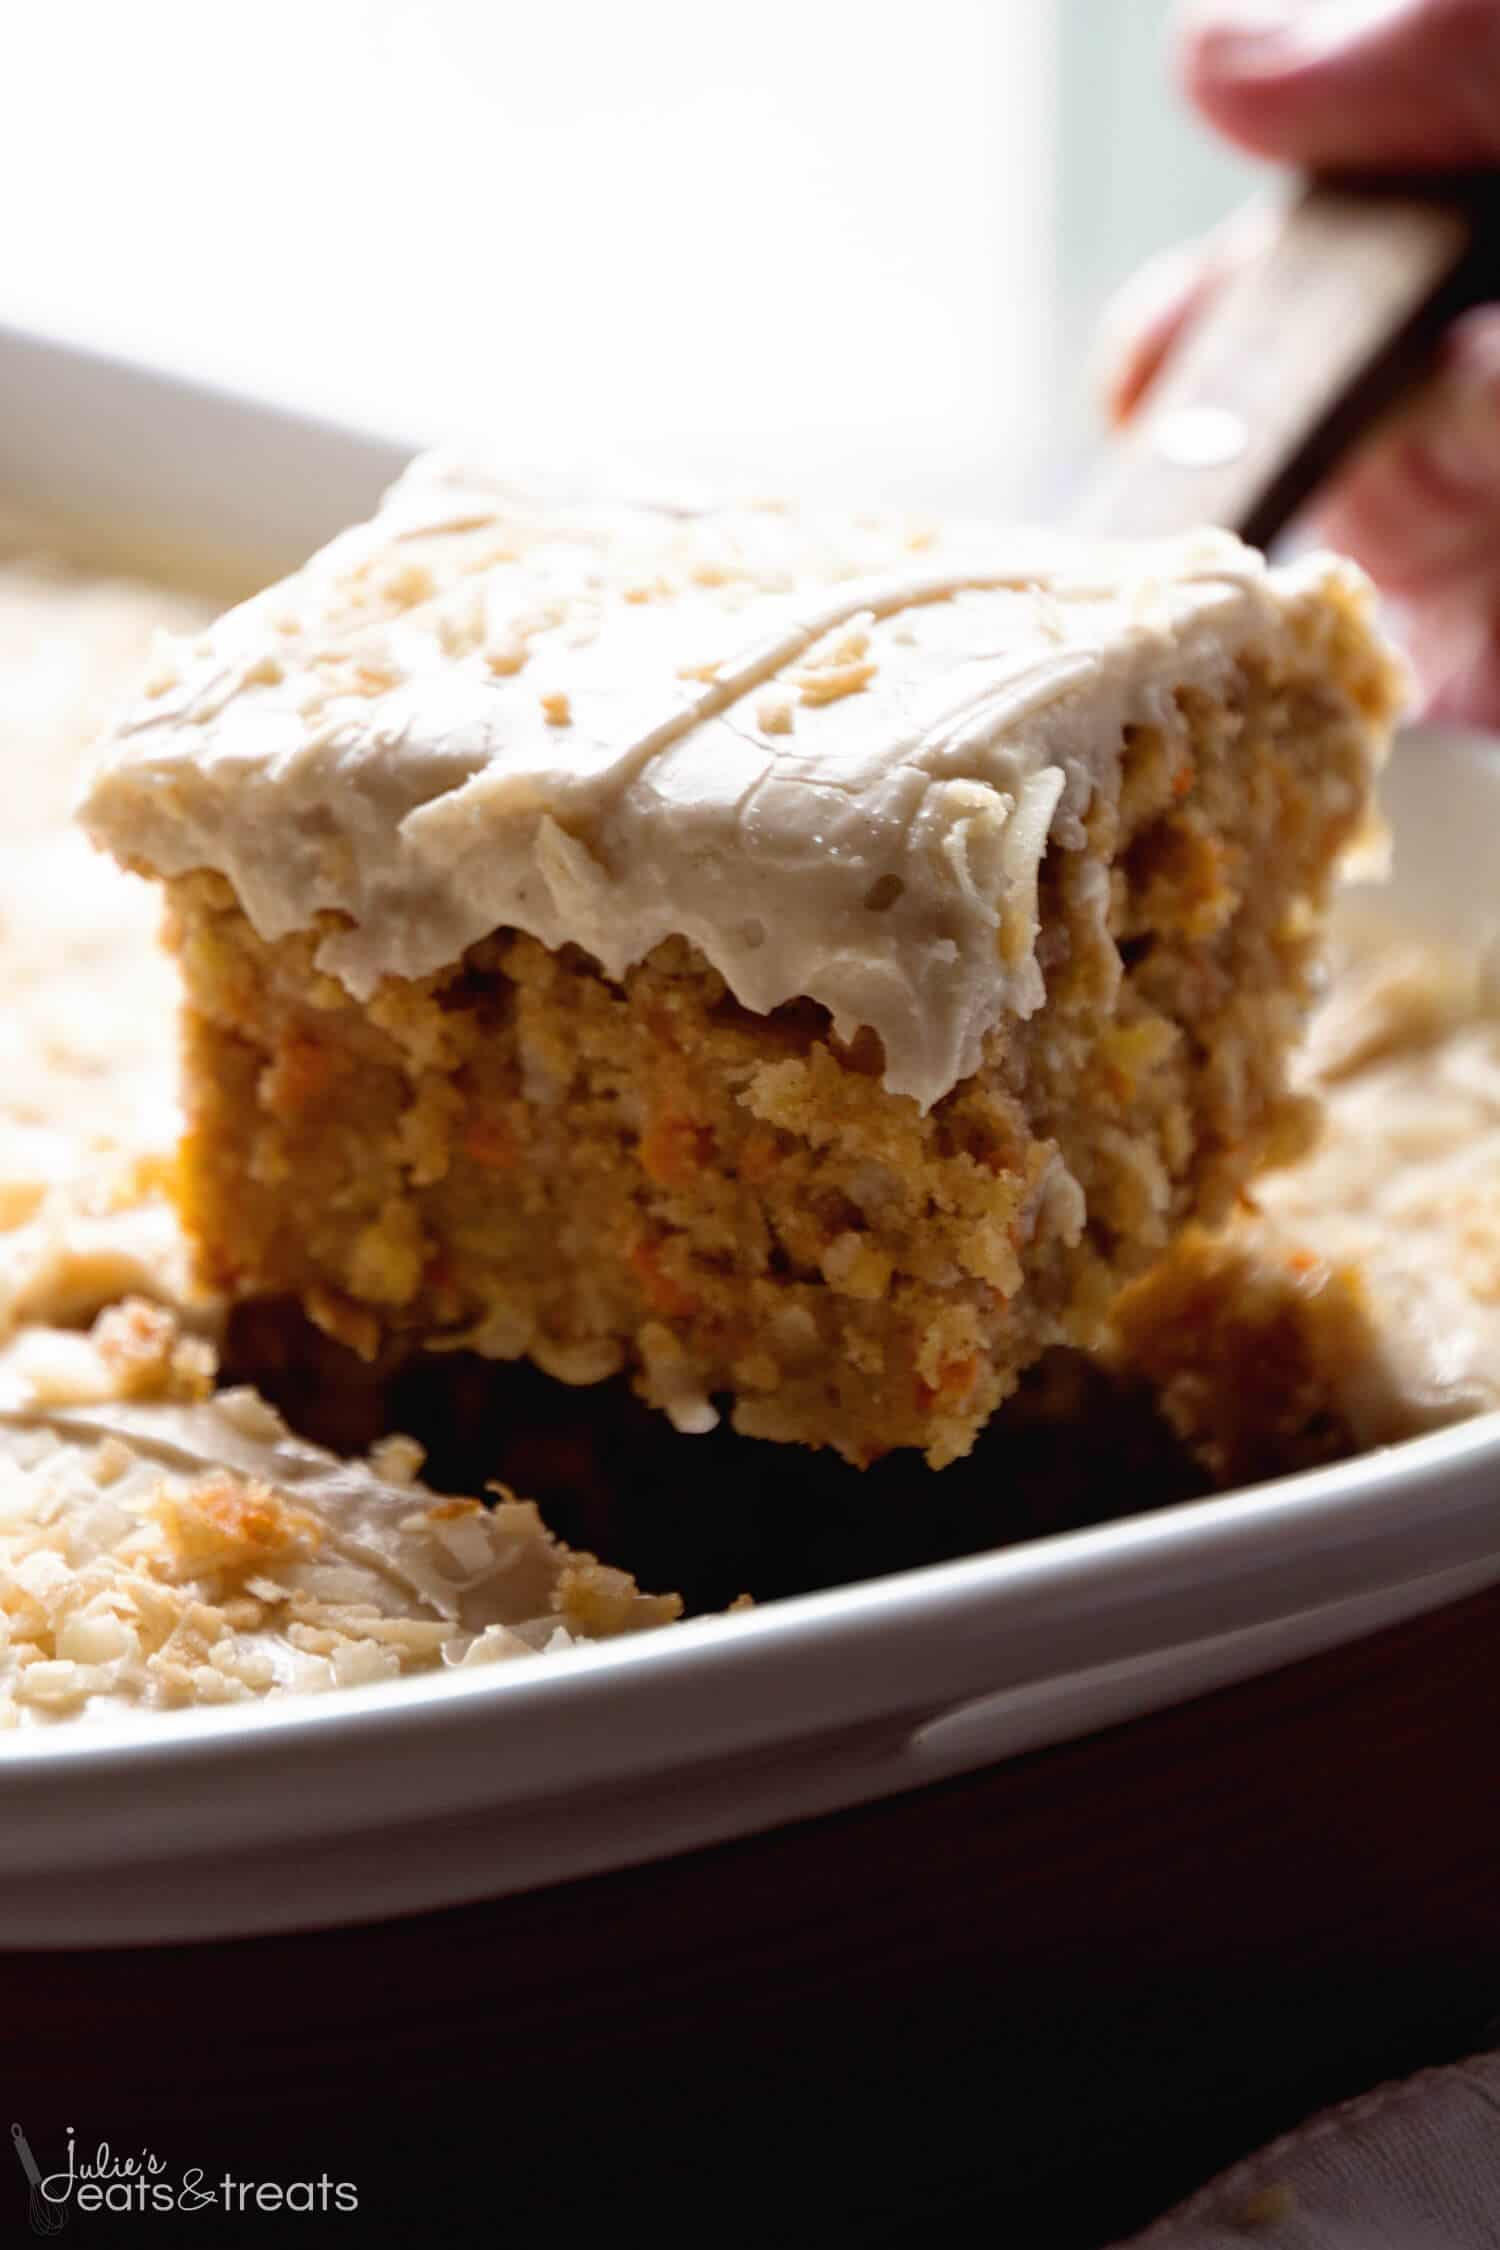 Piece of cinnamon carrot poke cake